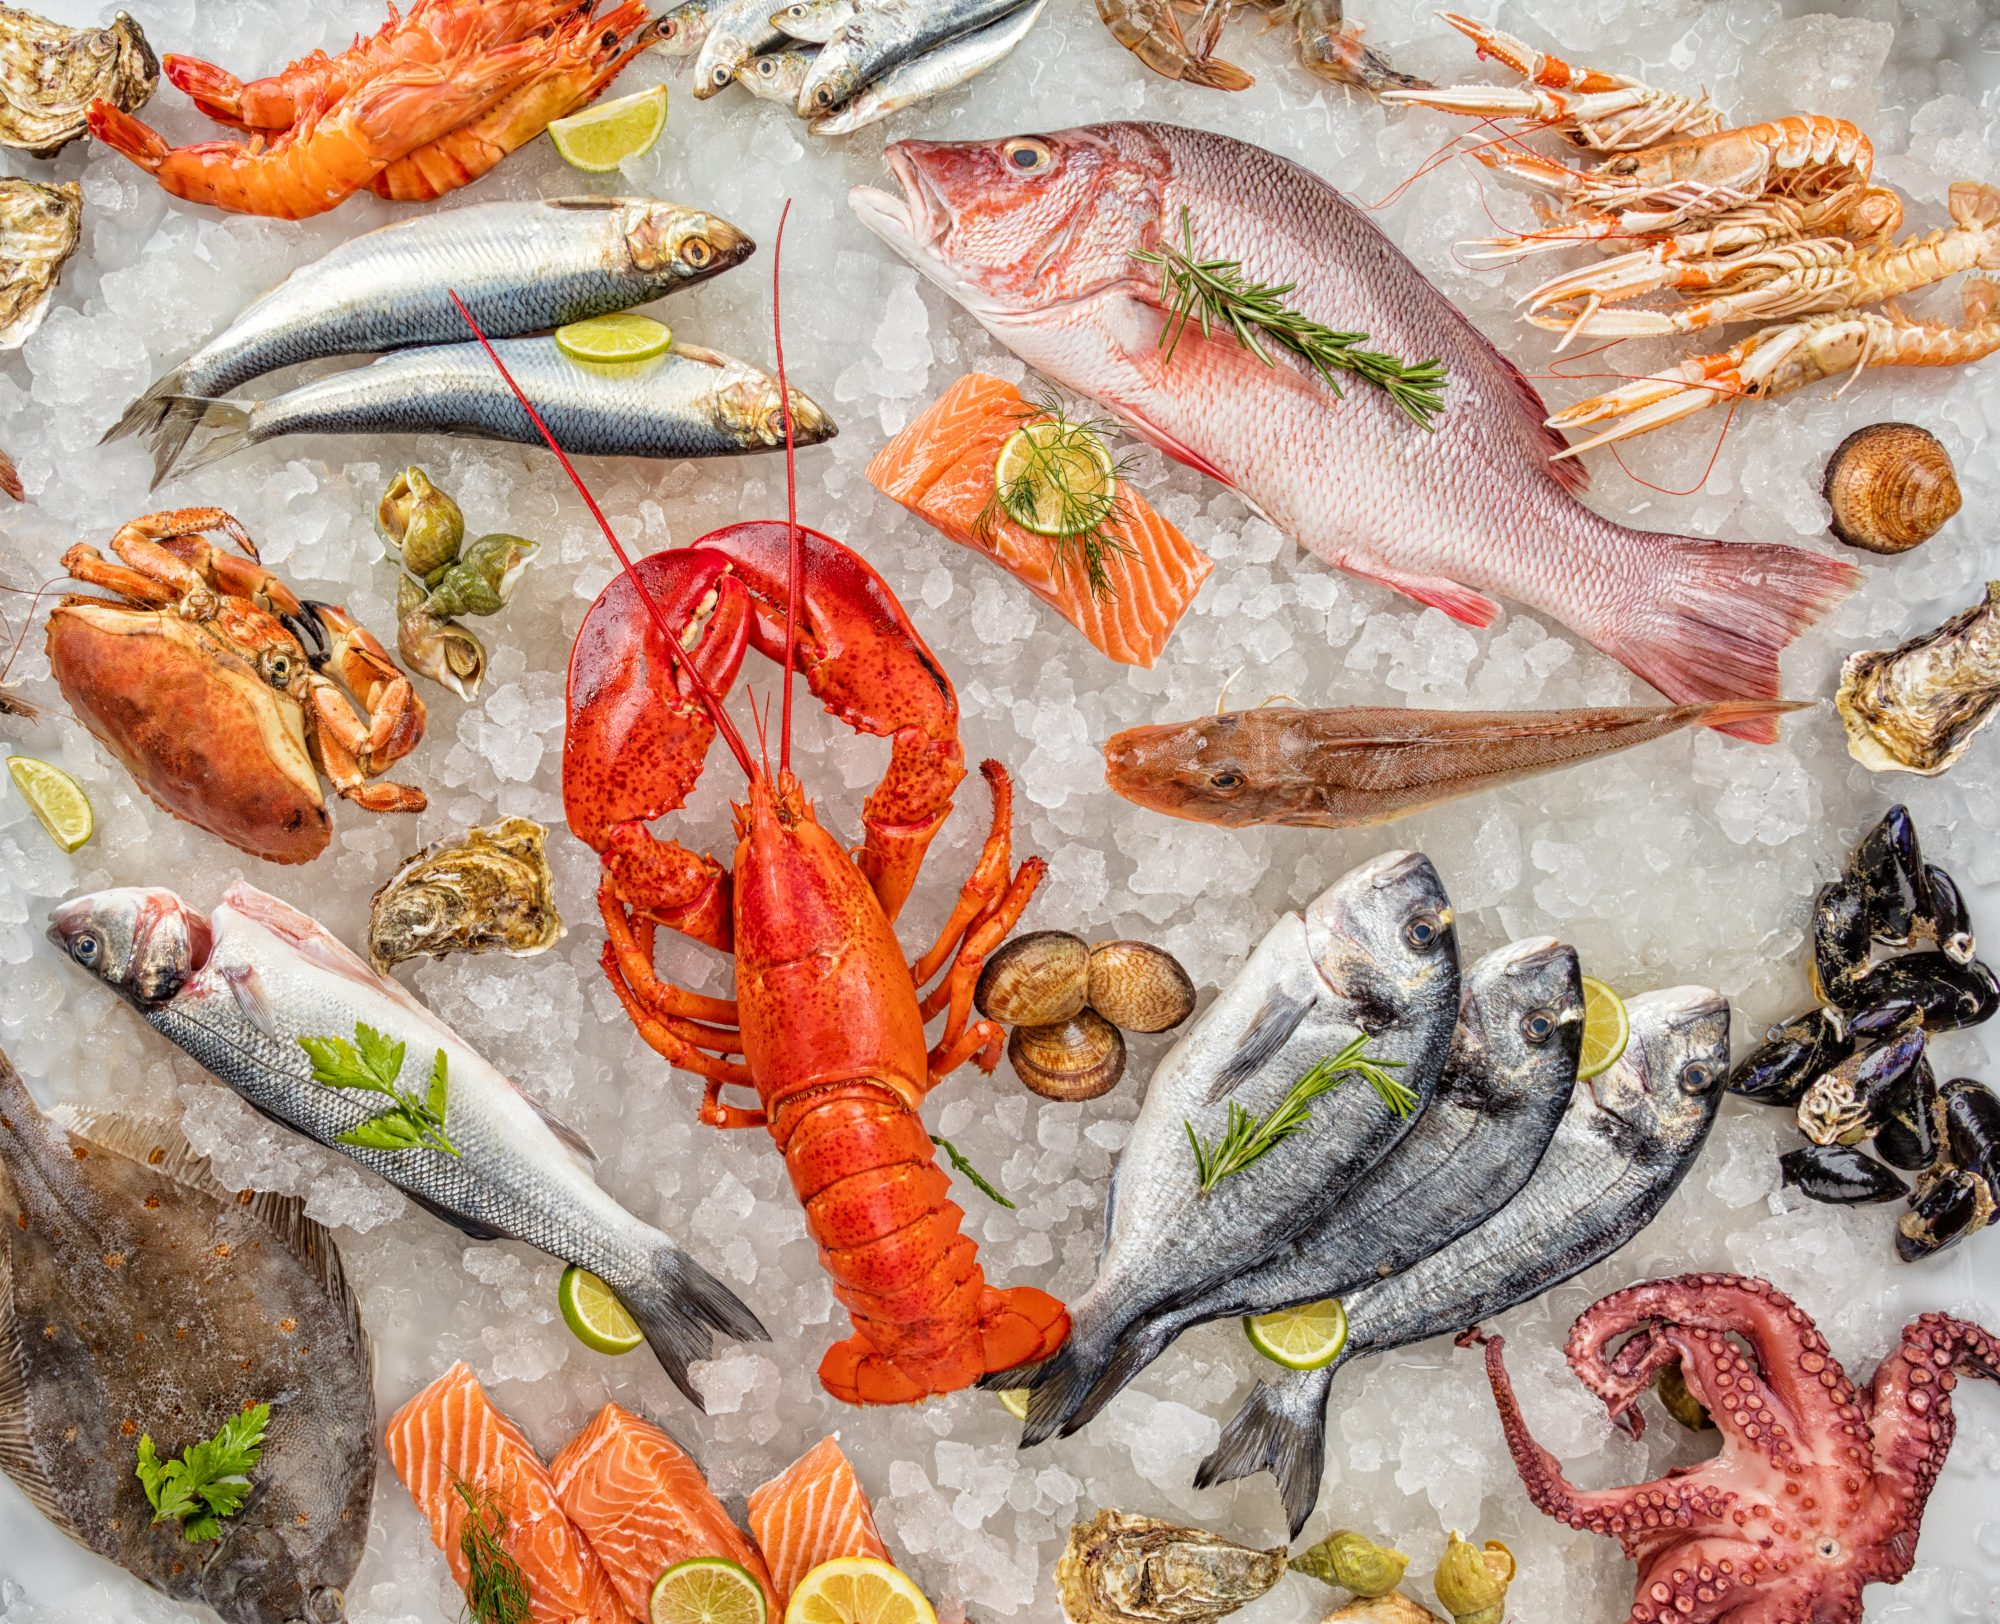 Many kind of seafood, served on crushed ice